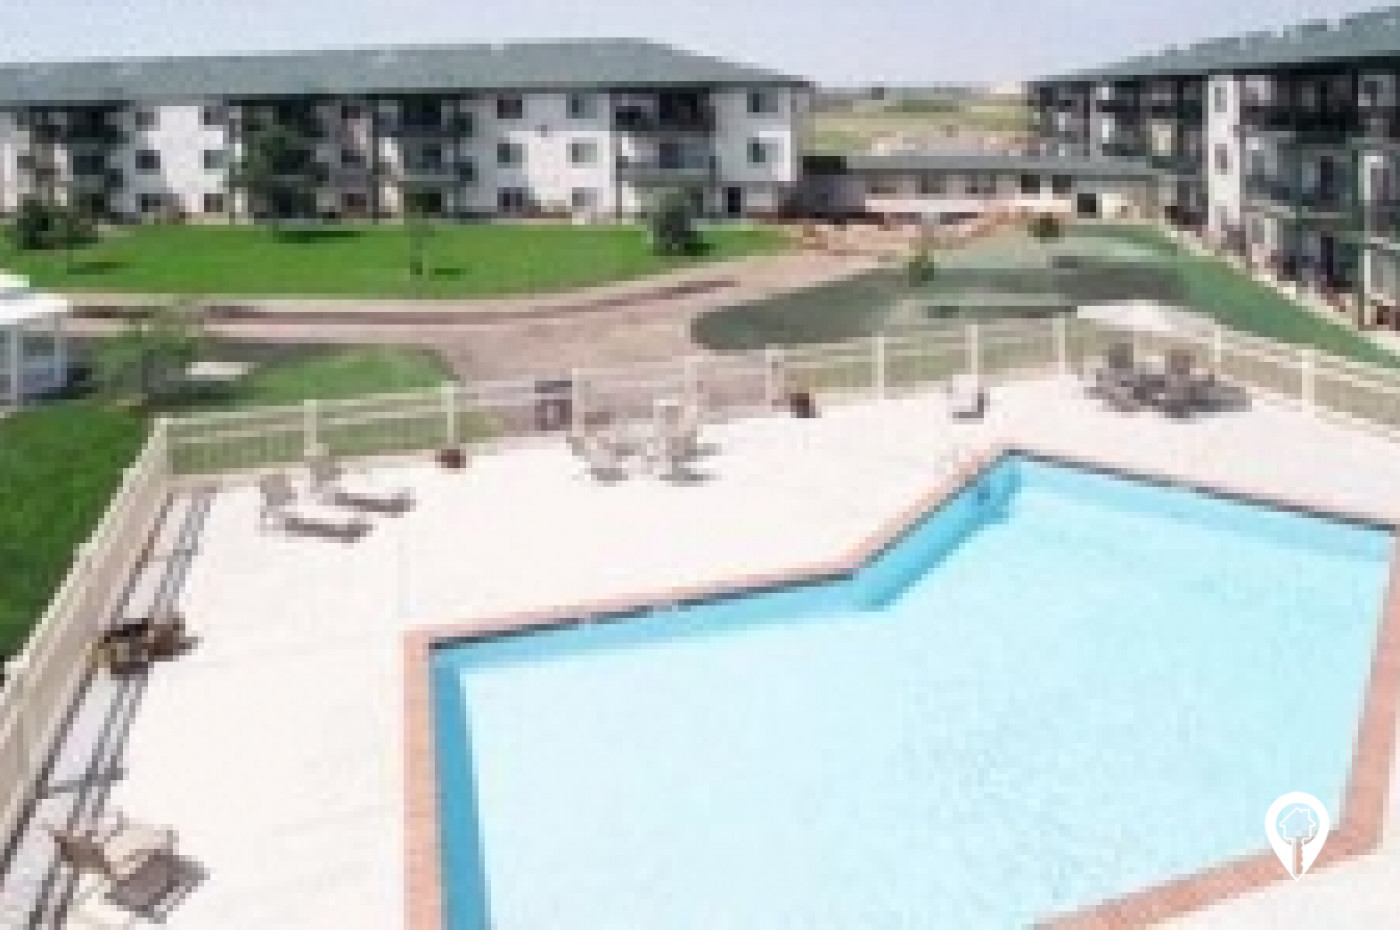 Lloyd Property Management - Donegal Pointe Apartments